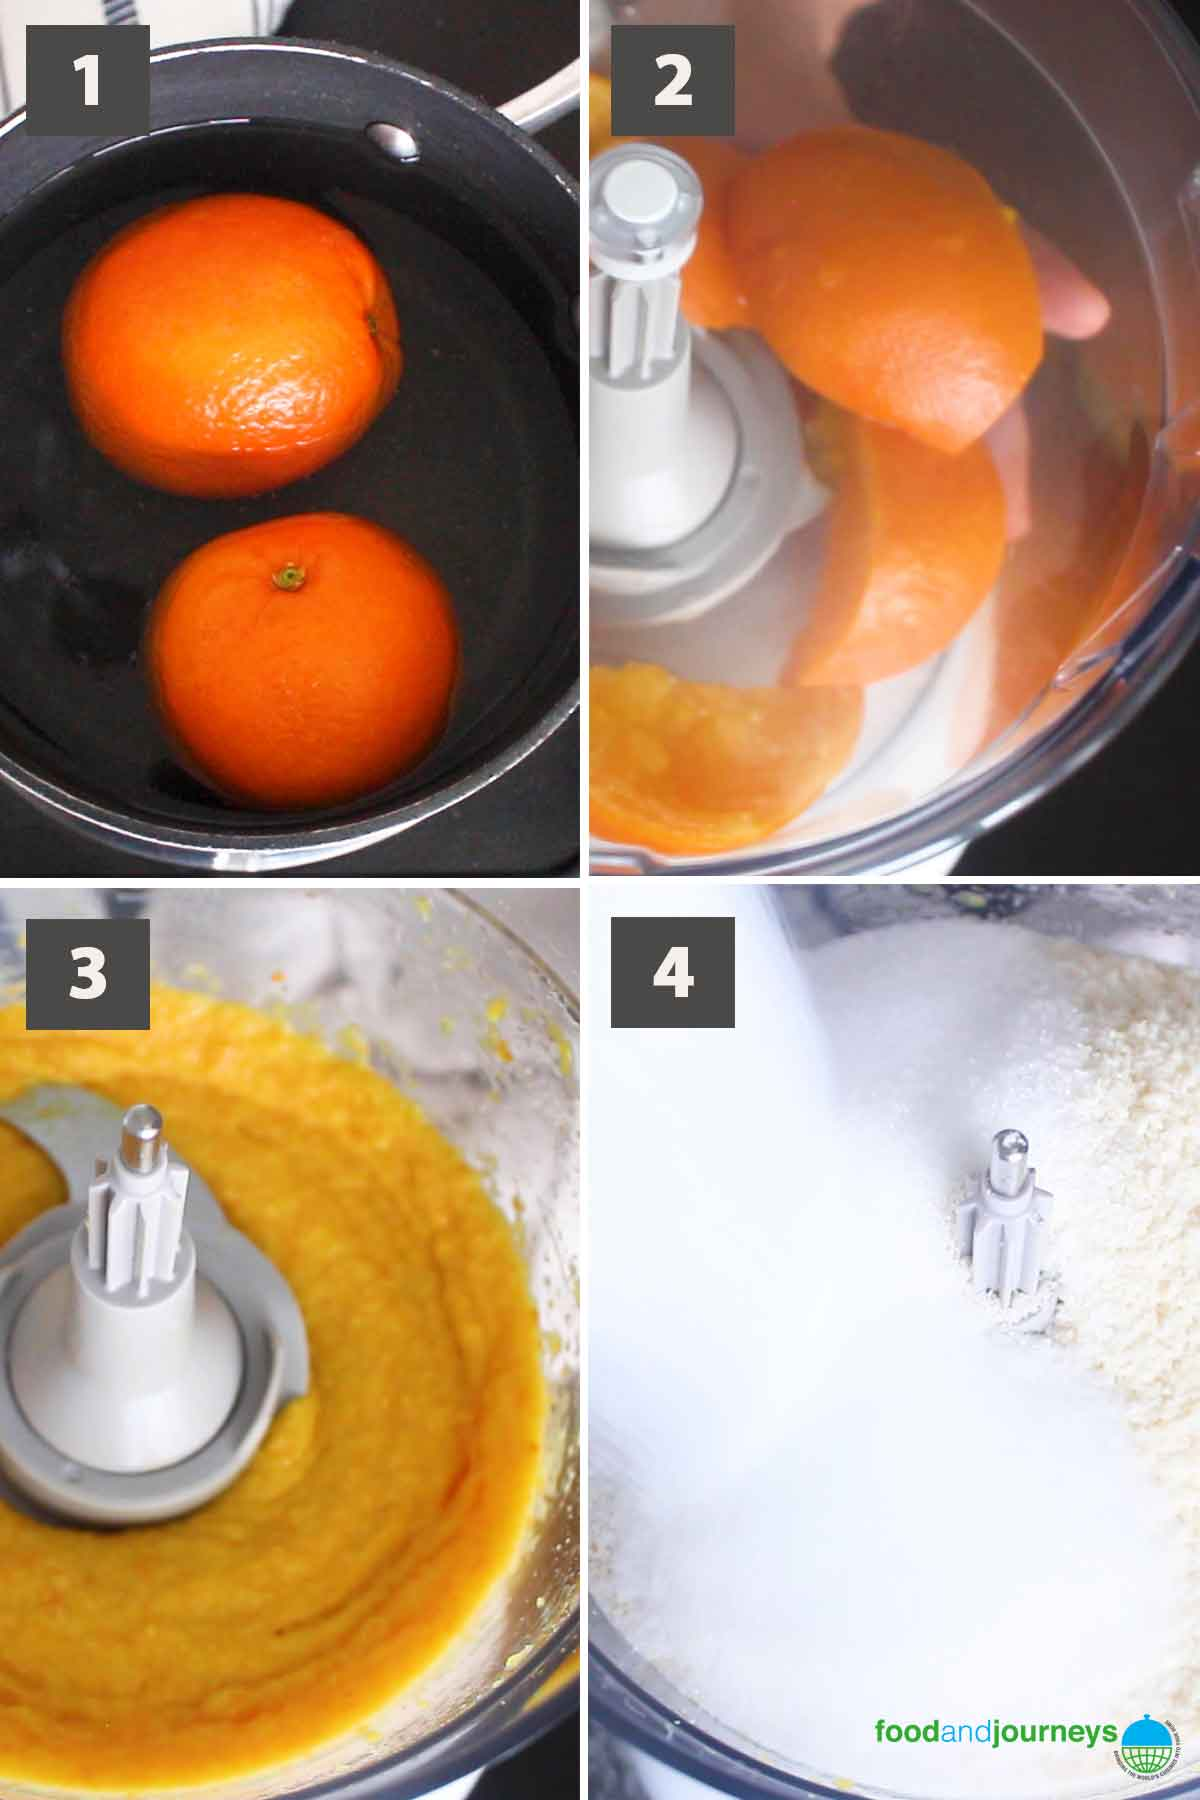 Updated first part of a collage of images showing the step by step process on how to prepare French Orange and Almond Flourless Cake.